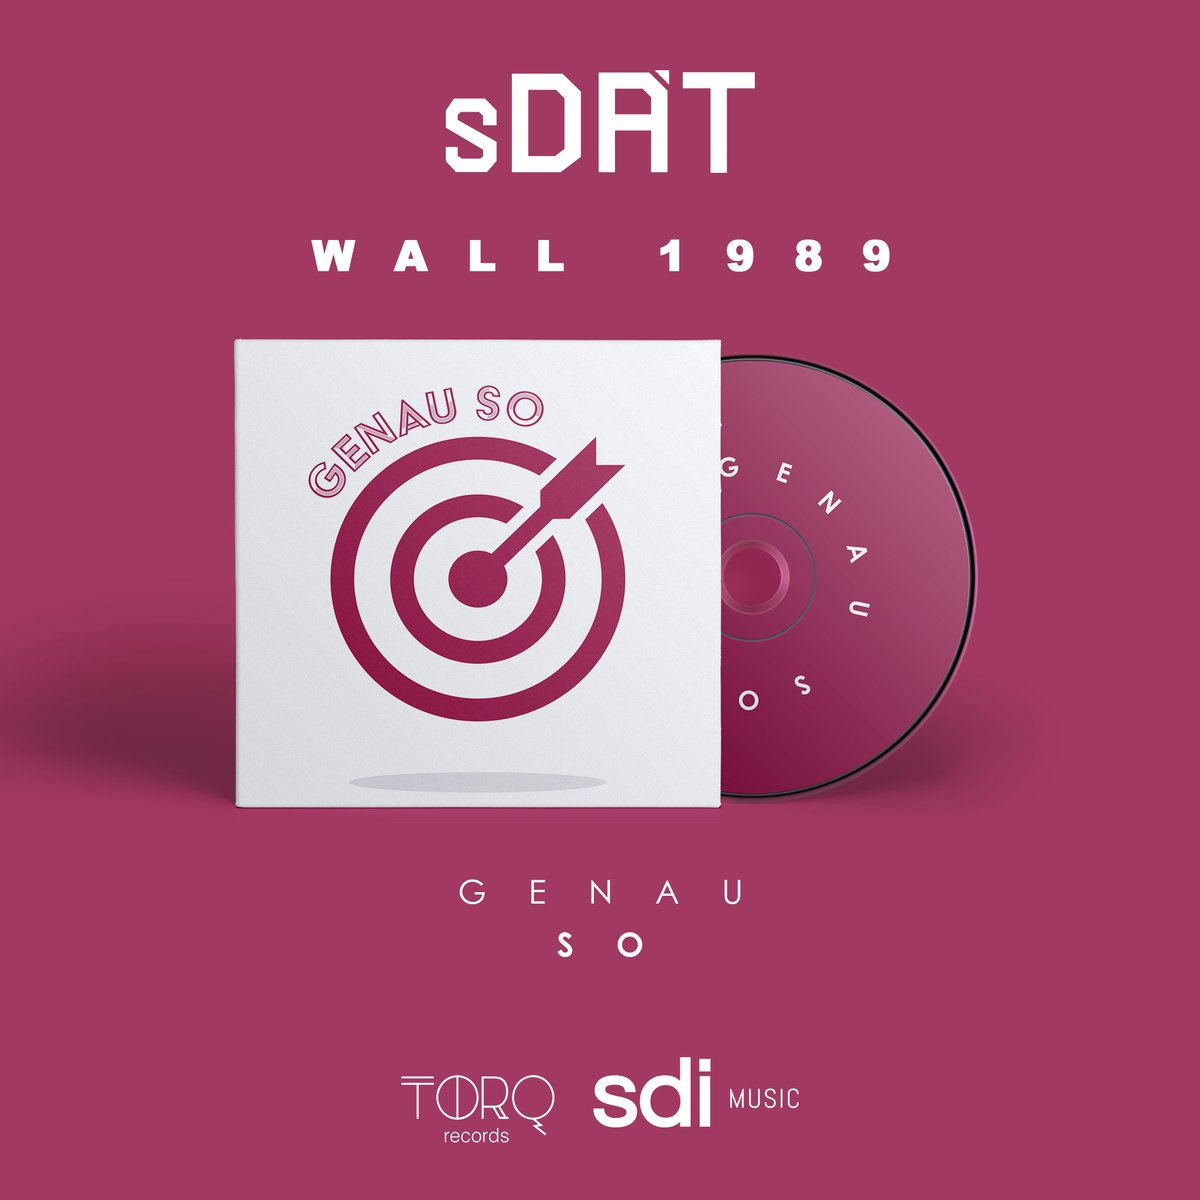 Wall 1989 by Sdat, is on the Genau So Compilation and the genre of the track is techno.  #berlin #deutschland #berlinwall #berlinmusic #technomusic #night #life #recordlabel #subculture #track #newtrack #wave #street #electro #electroclash #eurodance #drummachine #audiopic.twitter.com/wAavaLUr2Z